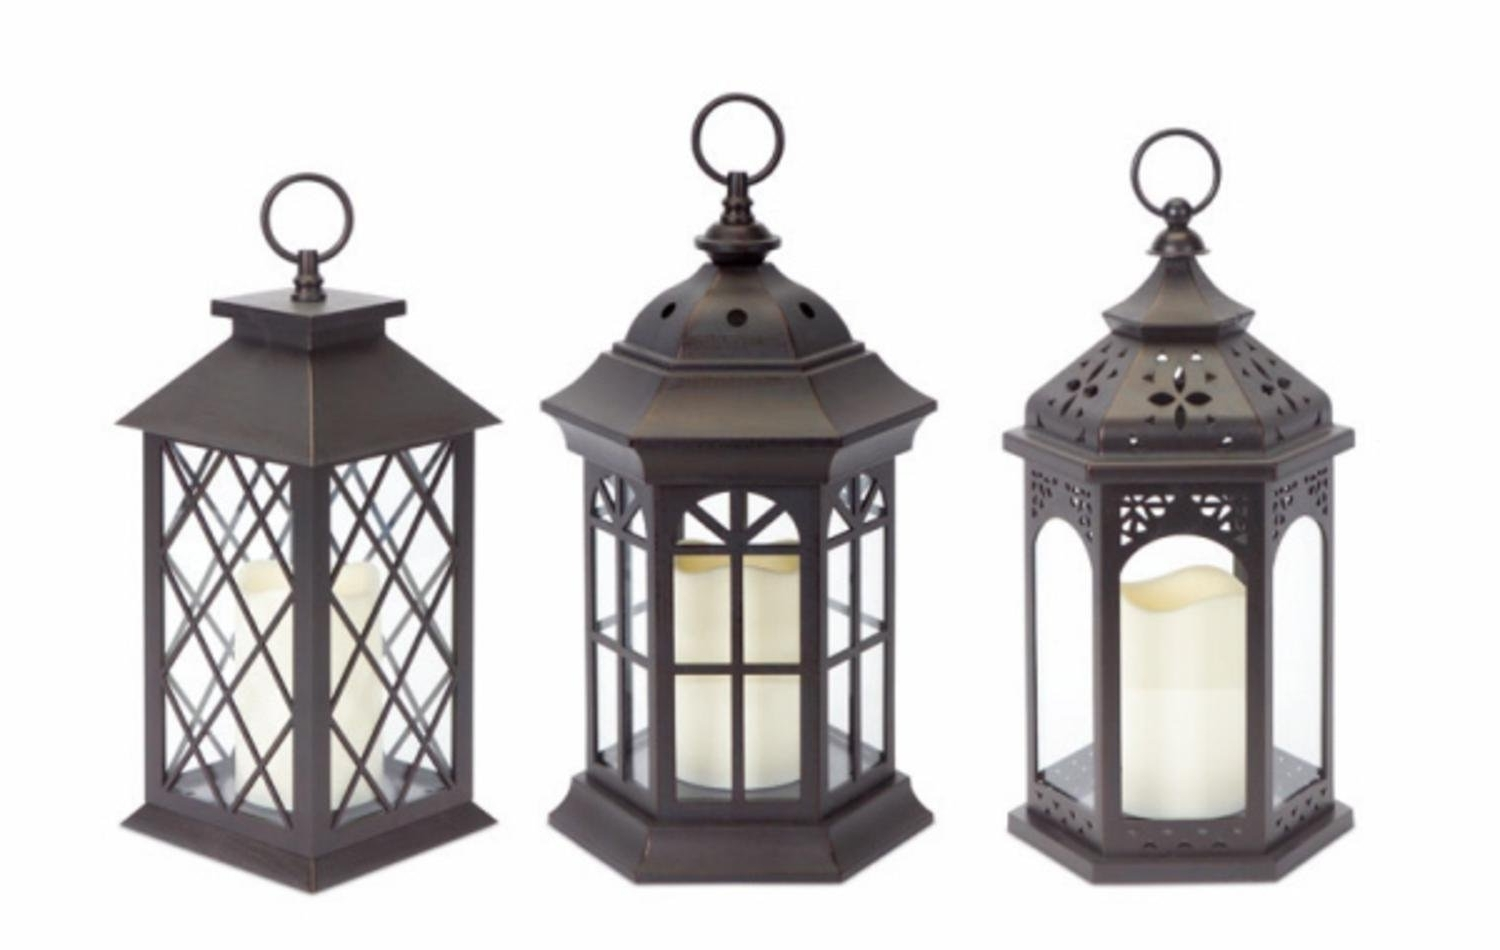 Famous Cheap Outdoor Lanterns Candle, Find Outdoor Lanterns Candle Deals On Regarding Outdoor Lanterns With Timers (View 1 of 20)